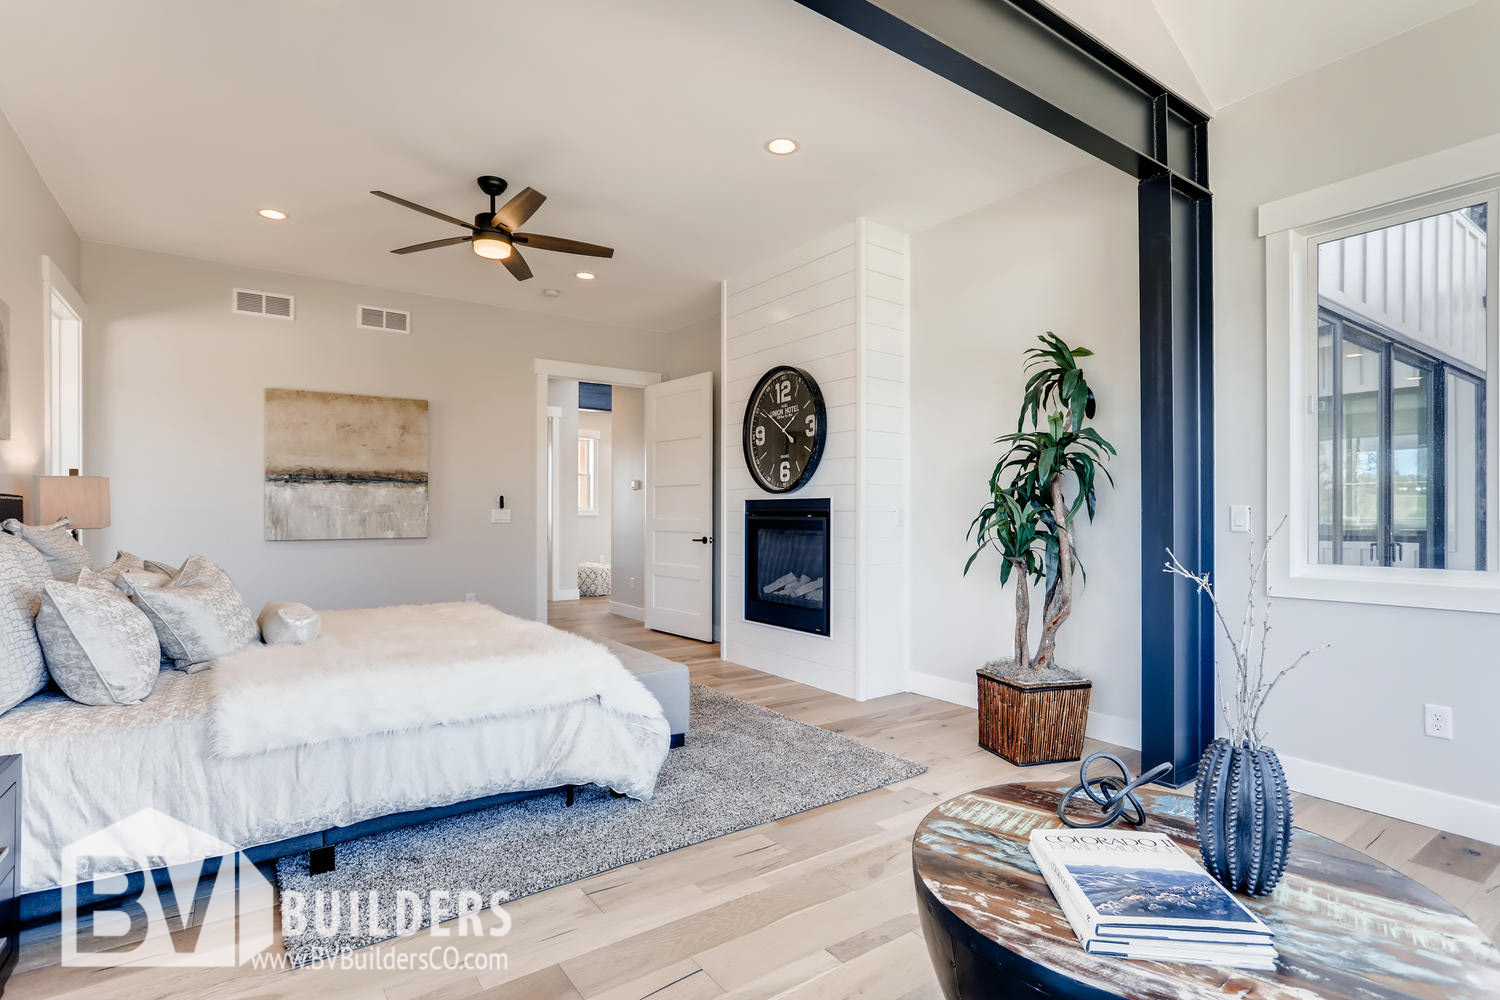 Modern farmhouse master bedroom with exposed steel beams and shiplap fireplace